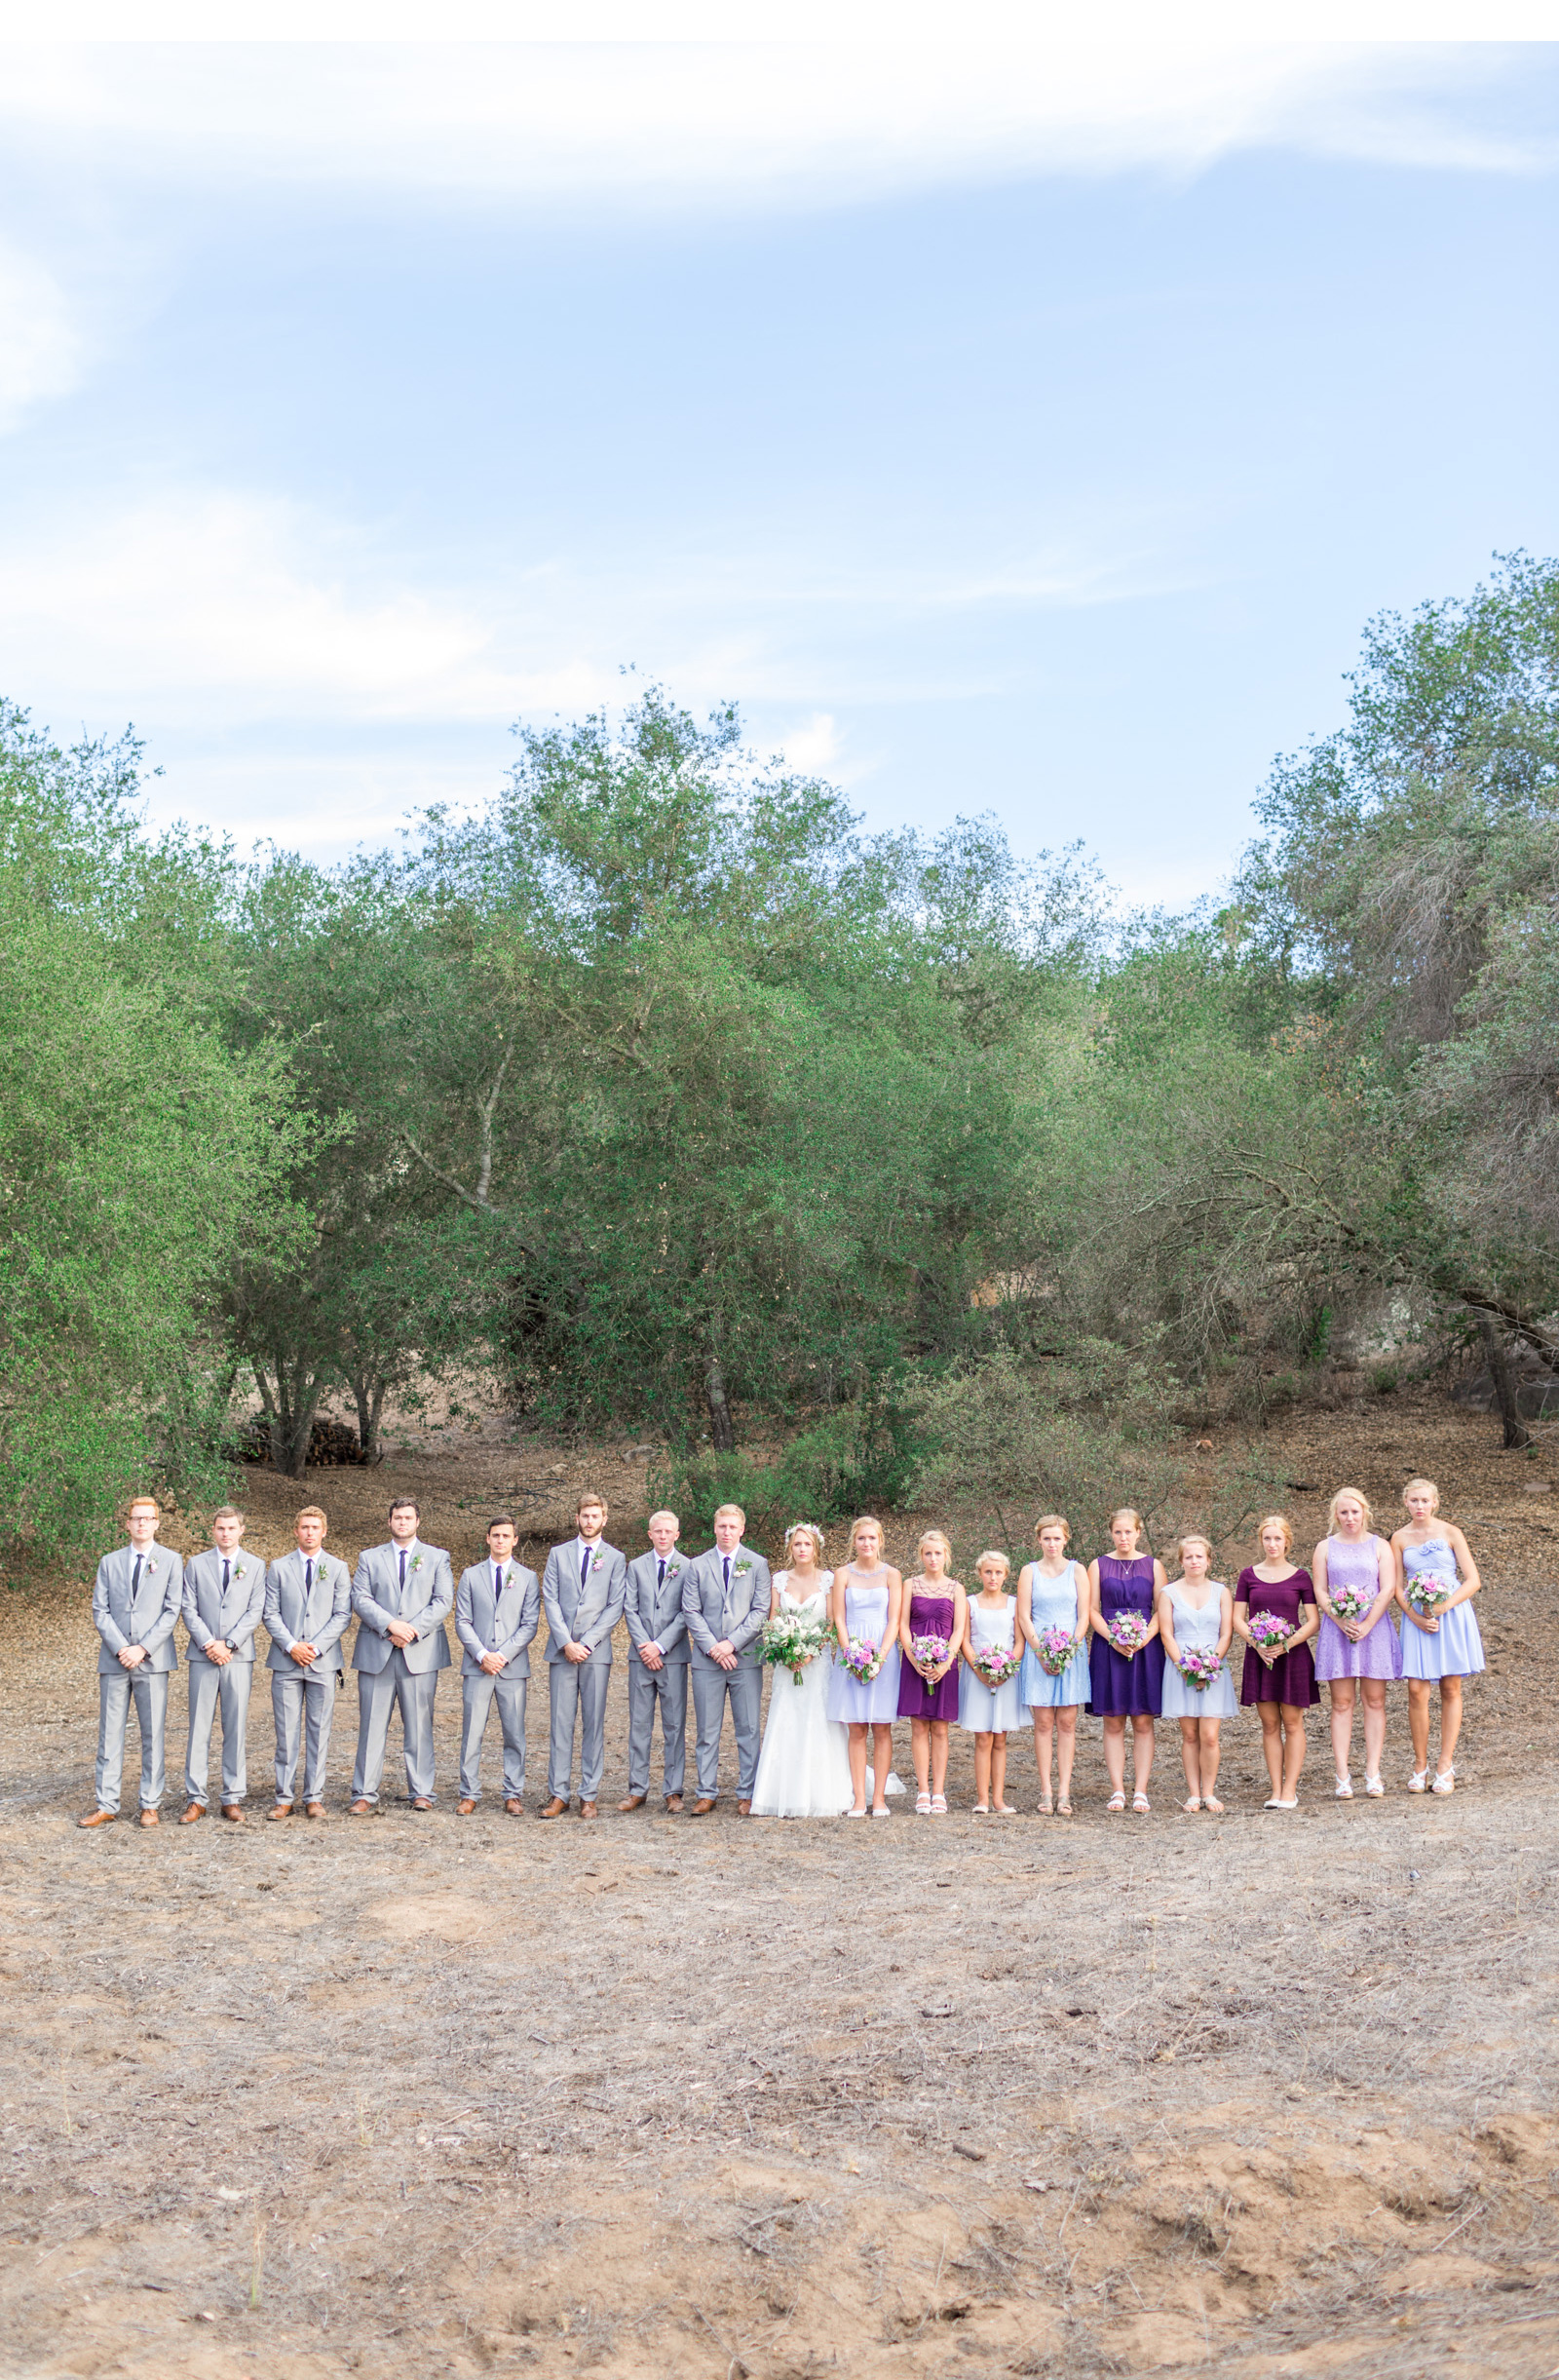 Thomas-&-Jessica-San-Diego-Wedding--Natalie-Schutt-Photography_01.jpg